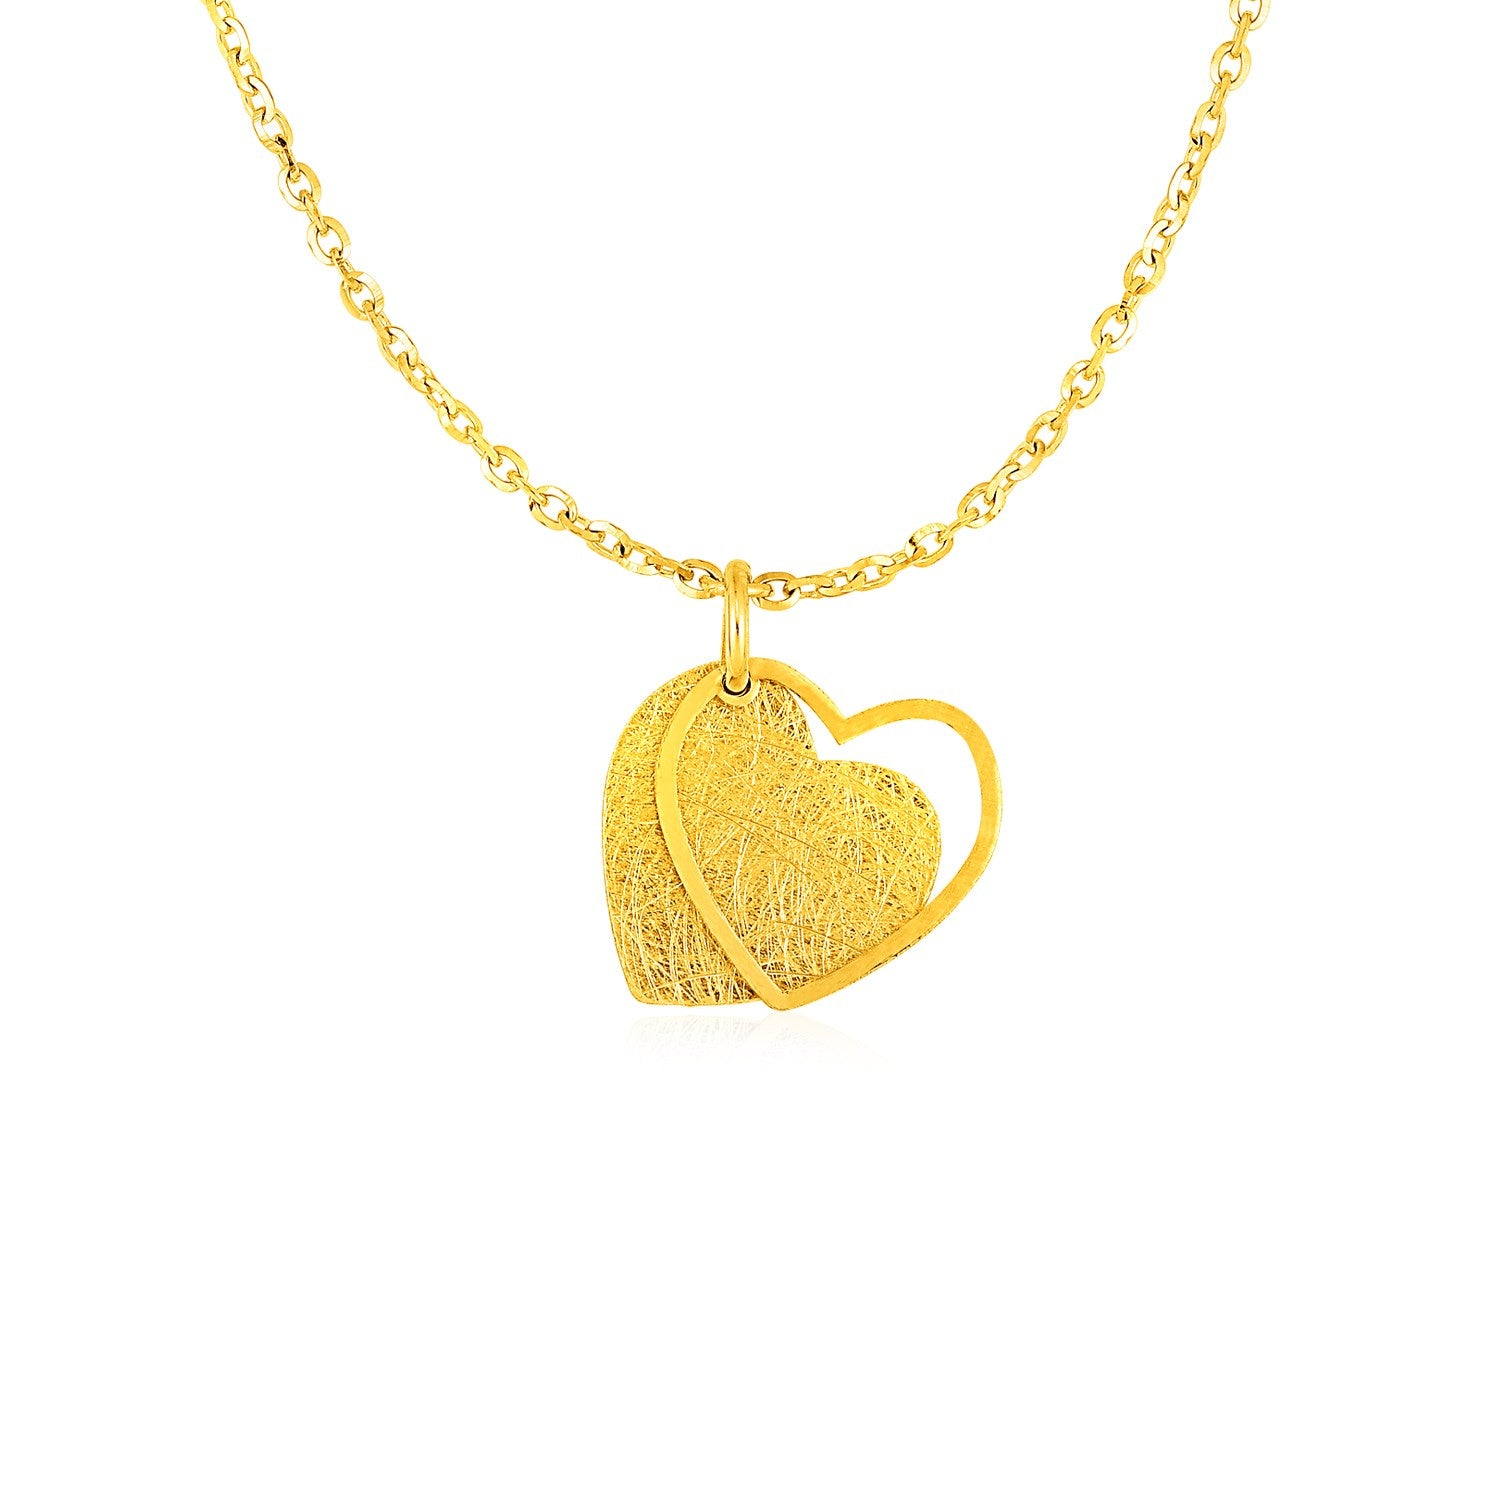 Original New York Style  Two Layer Heart Pendant in 14K Yellow Gold